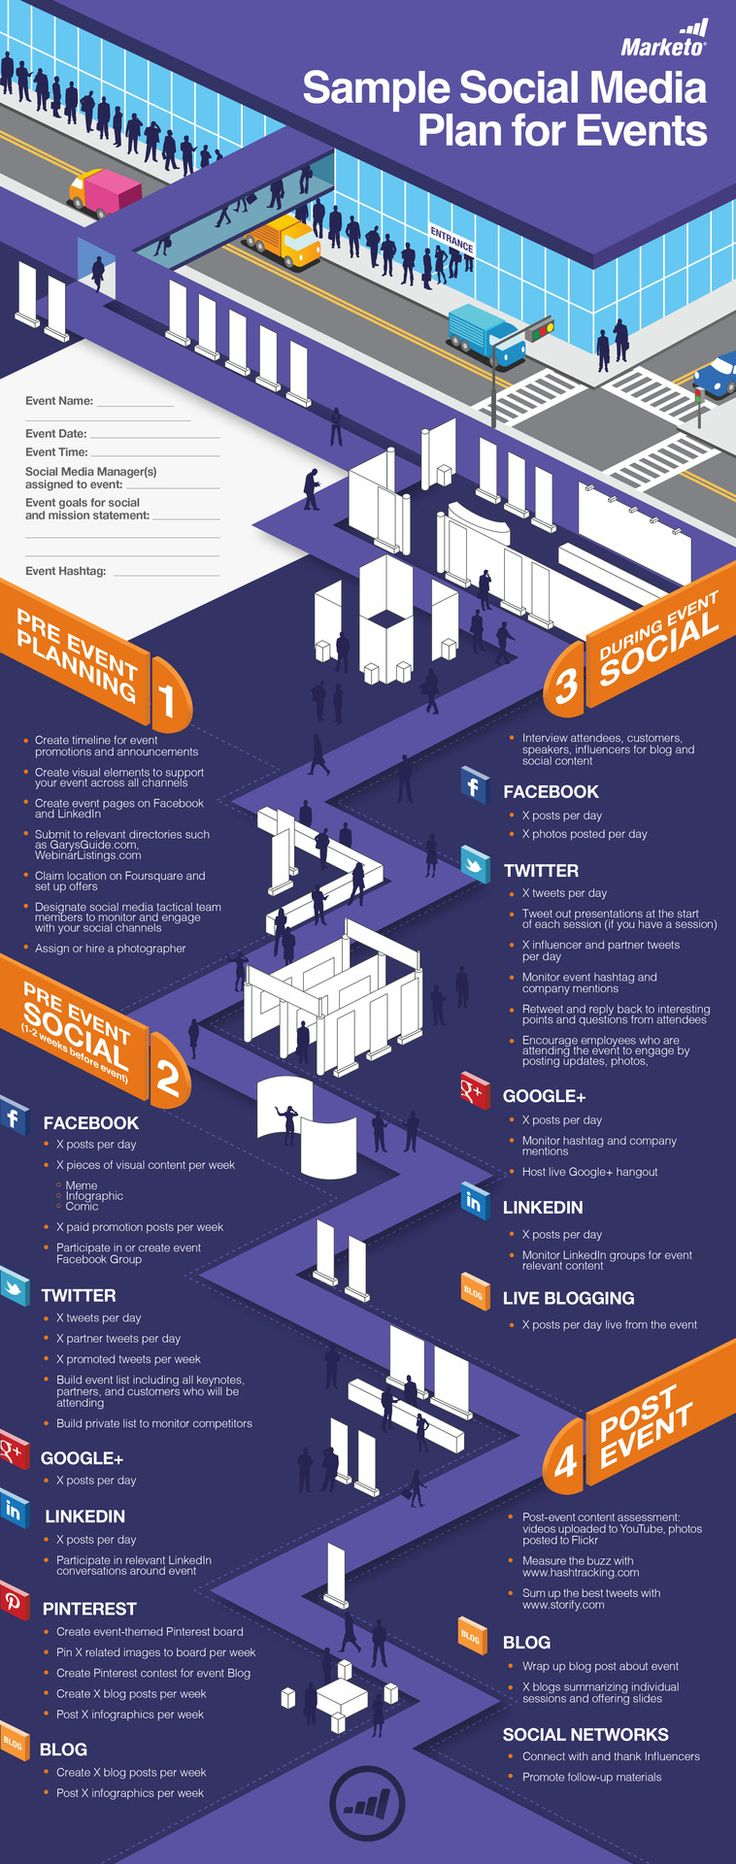 The Ultimate Social Media Event Marketing Checklist, merci @Alexis Mons pour la veille